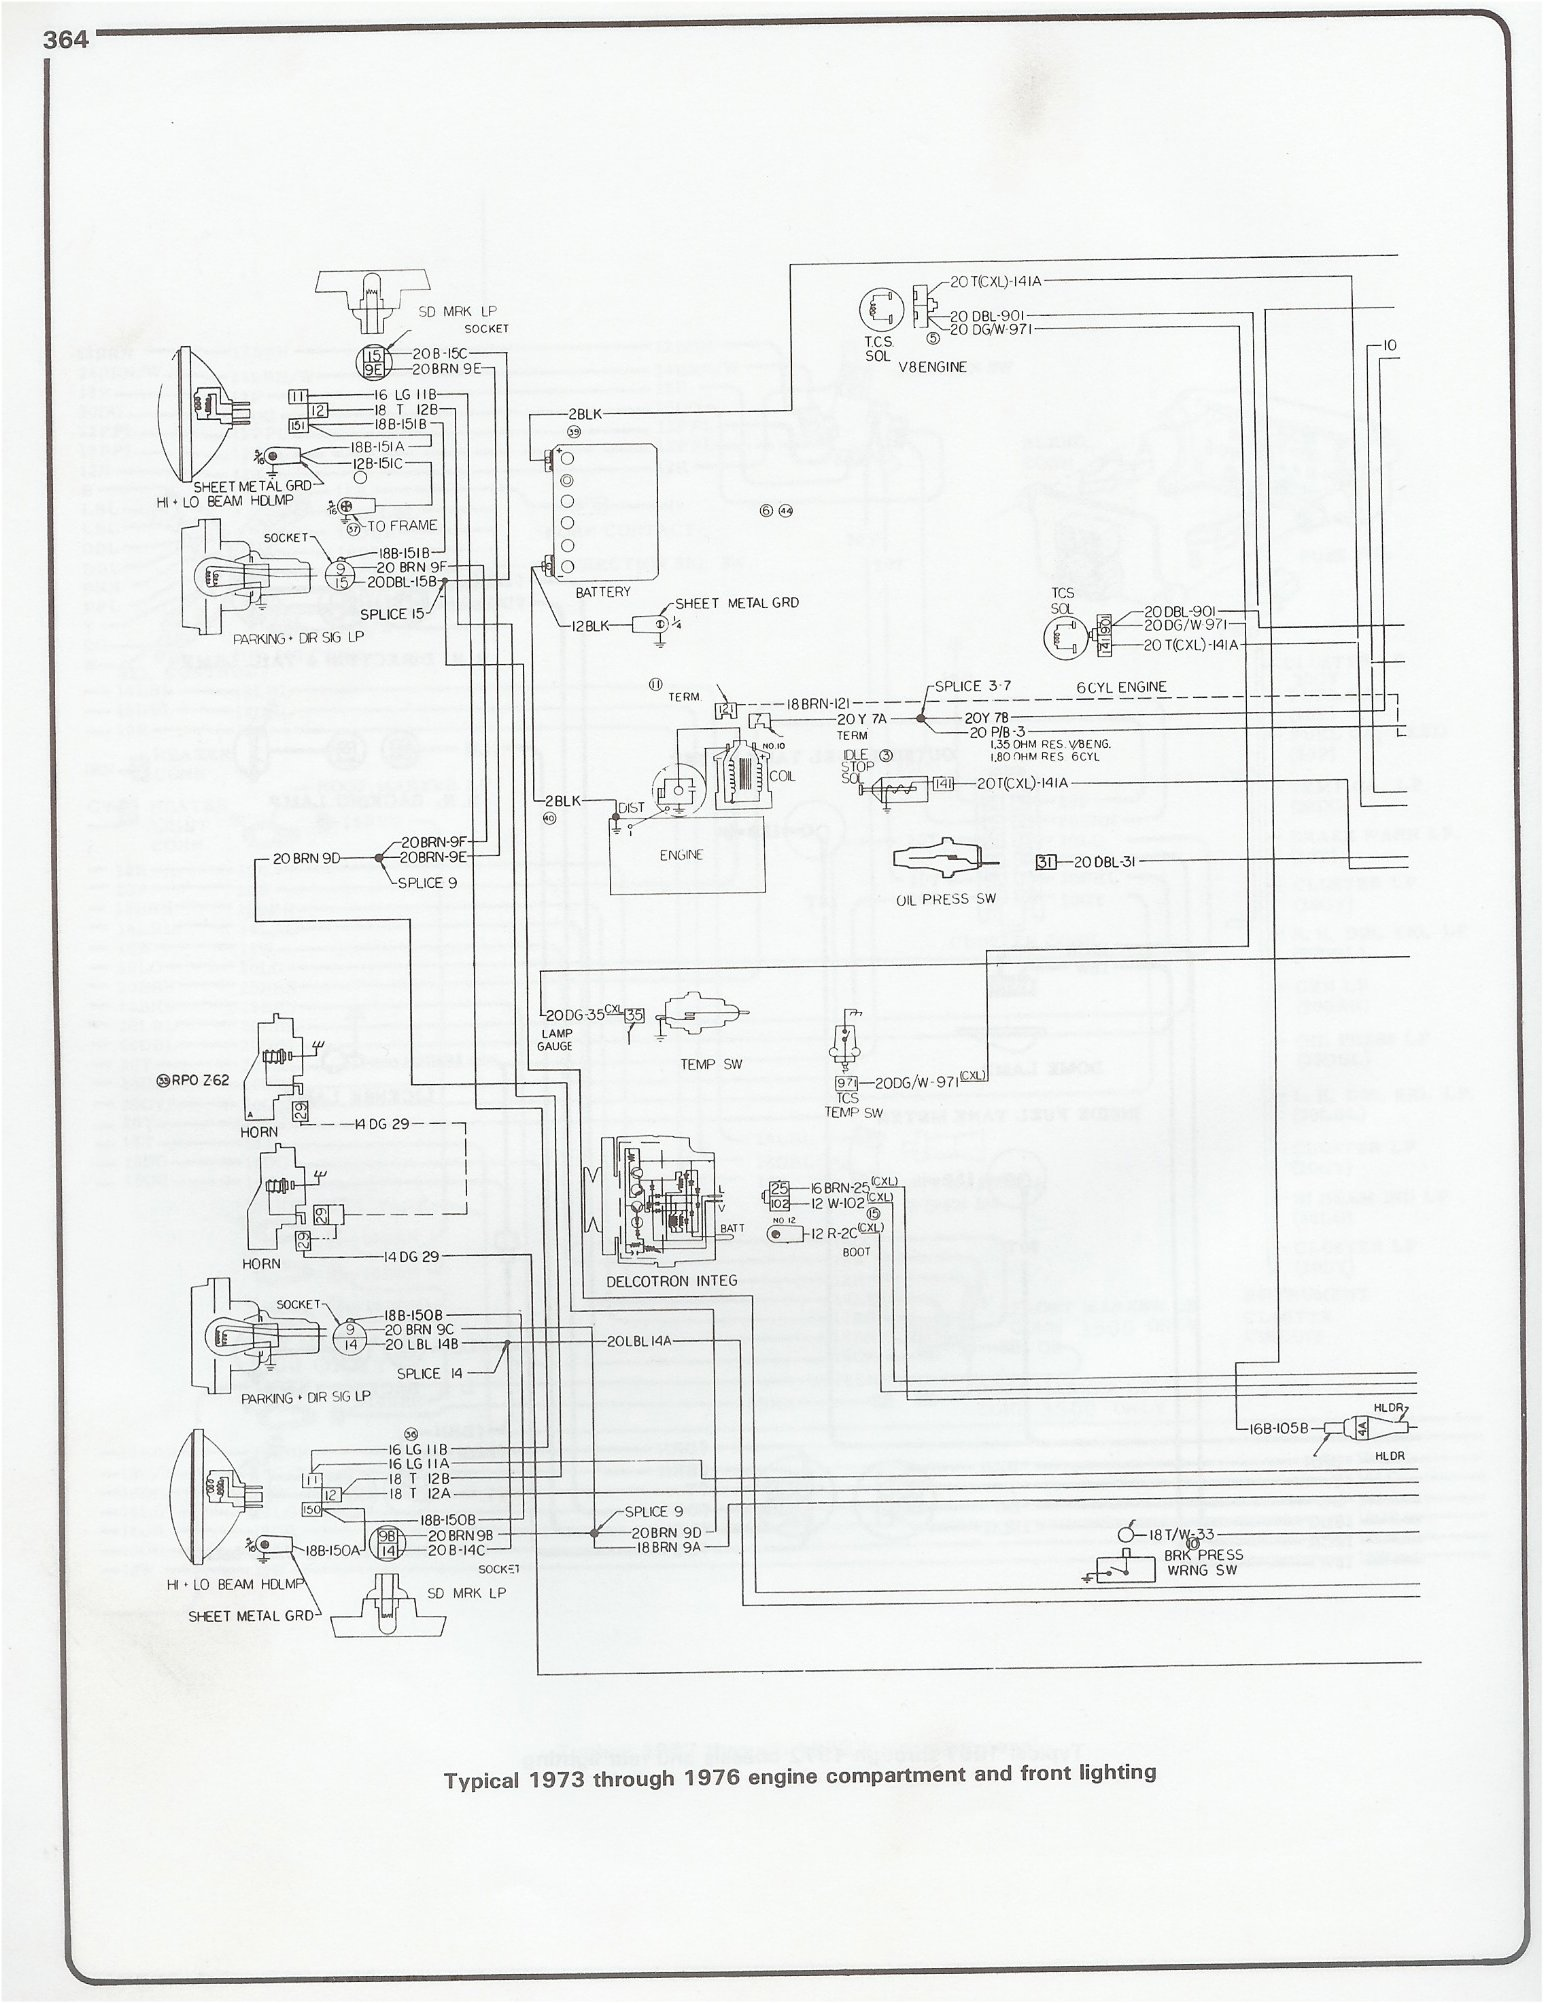 1976 Gmc Truck Wiring Diagram Books Of 1973 Camaro Fuse Box Complete 73 87 Diagrams Rh Forum 87chevytrucks Com